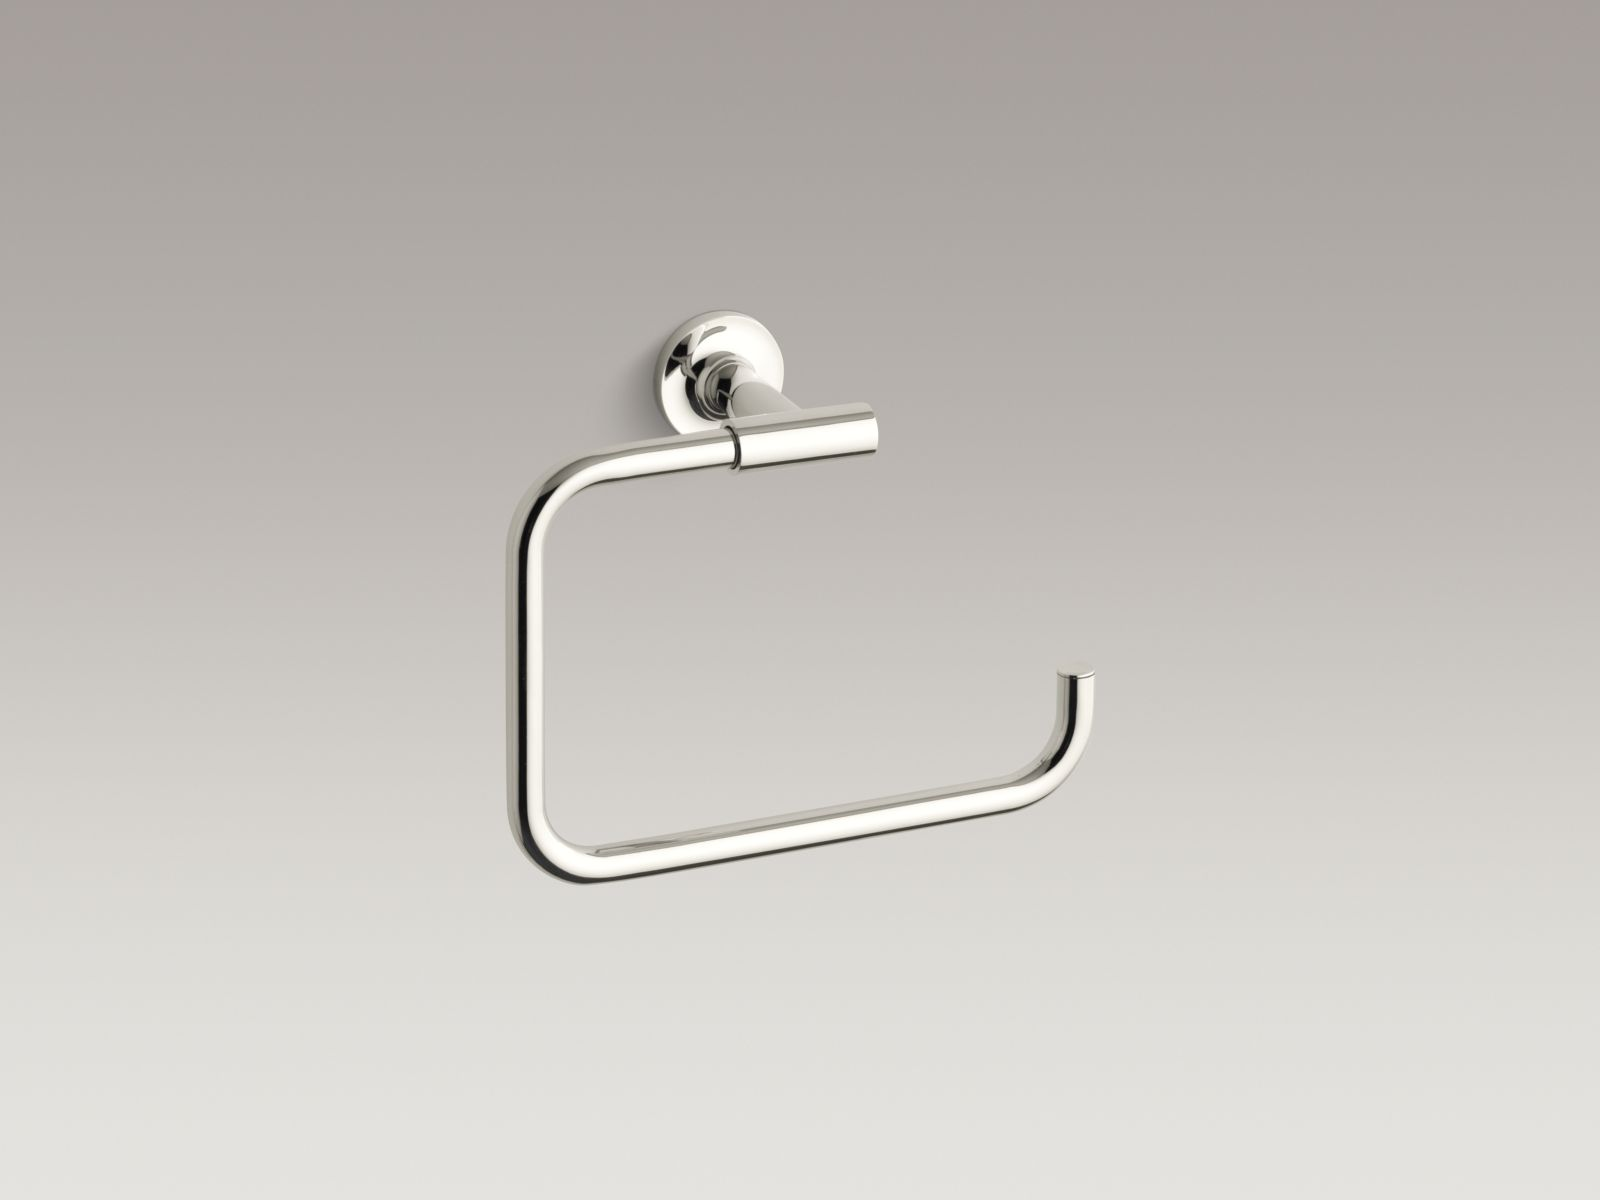 Kohler K-14441-SN Purist Towel Ring Polished Nickel